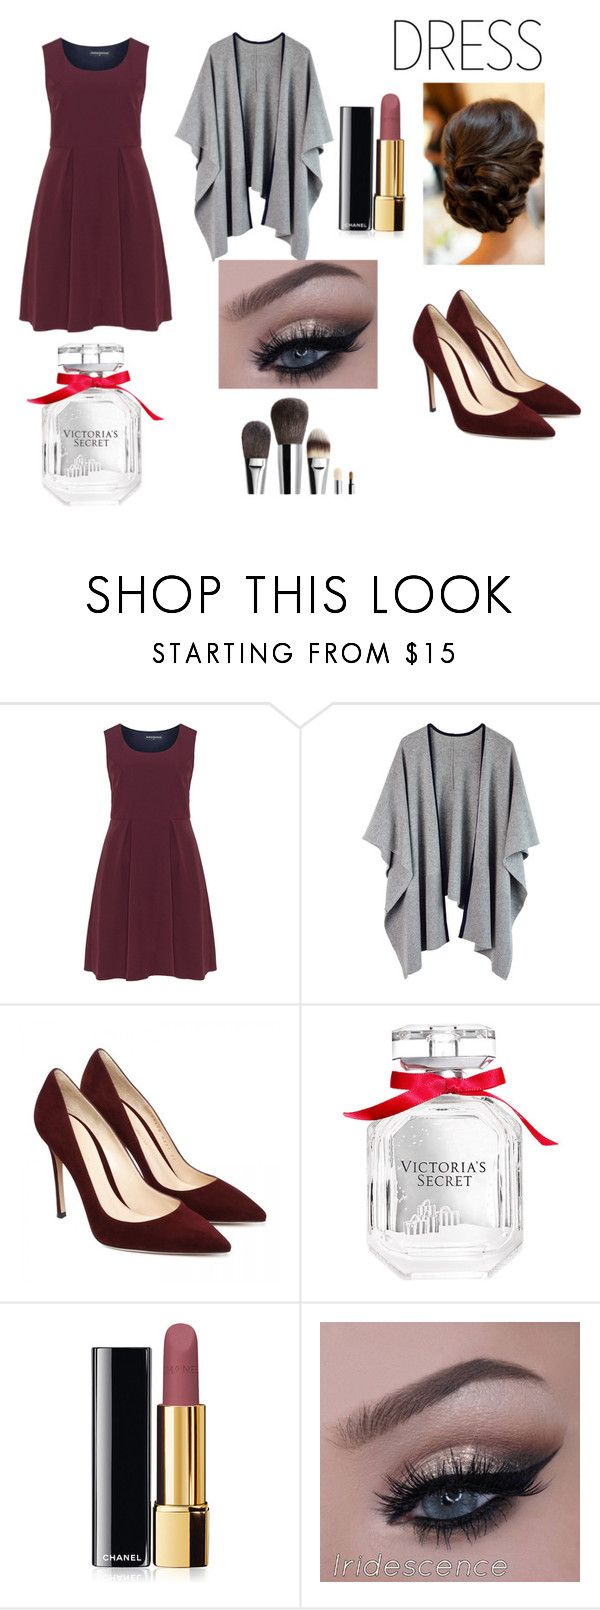 """""""Over sized dress trend"""" by garance12 ❤ liked on Polyvore featuring Manon Baptiste, Victoria's Secret, Chanel, holidaystyle and oversizeddress"""